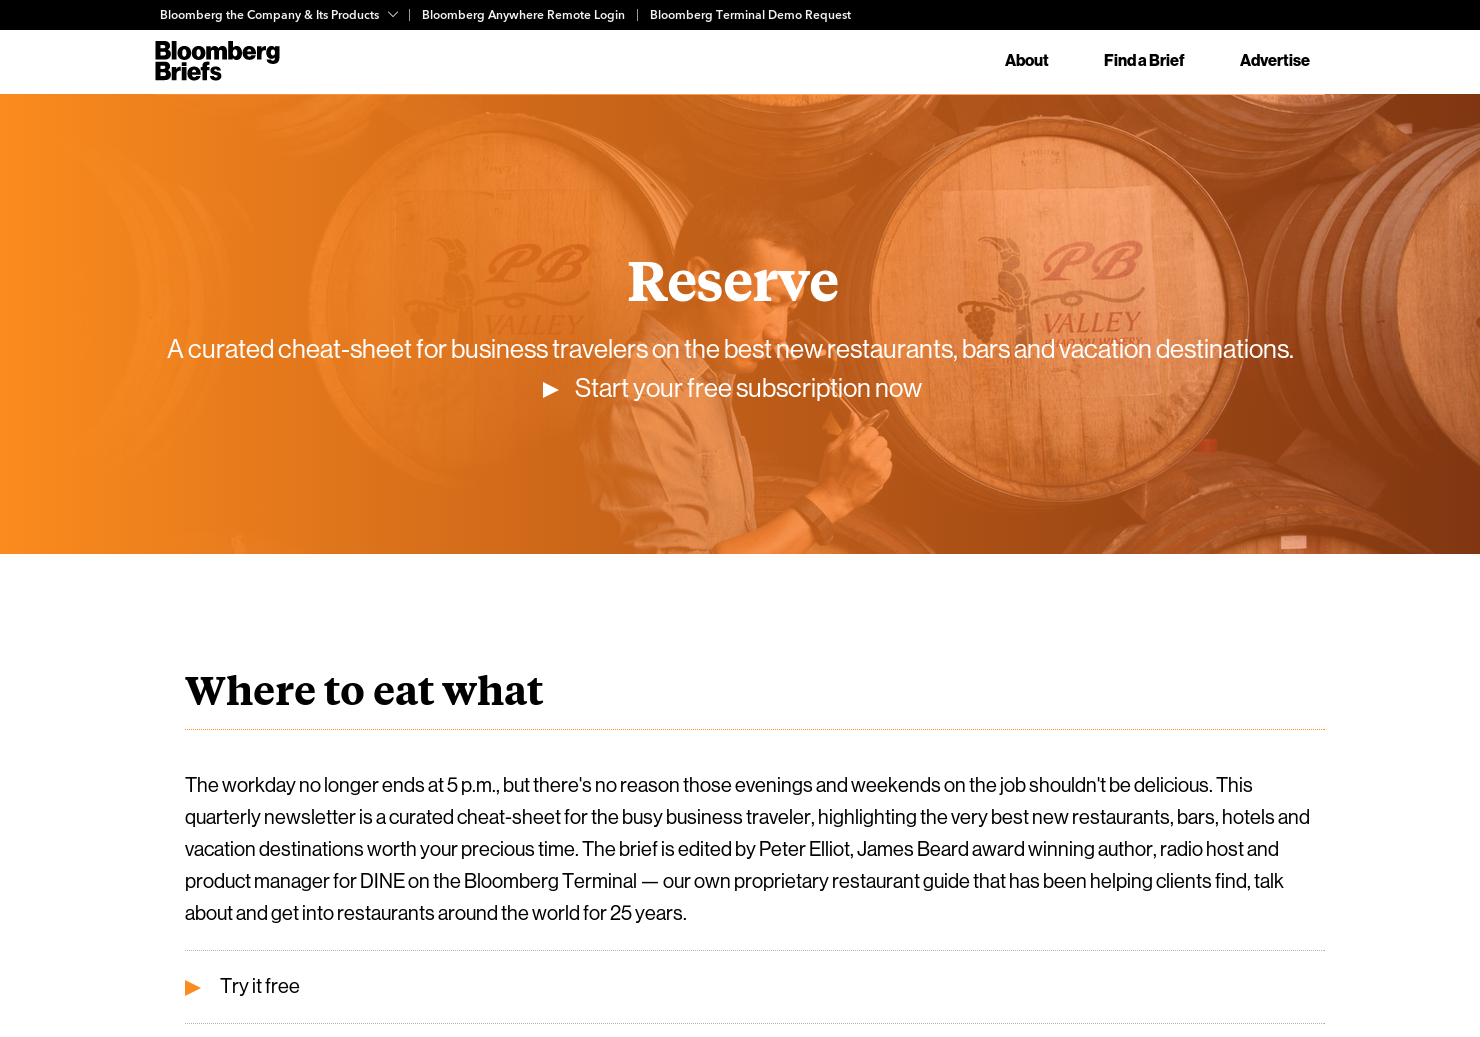 Bloomberg Reserve - Restaurant recs and hospitality industry